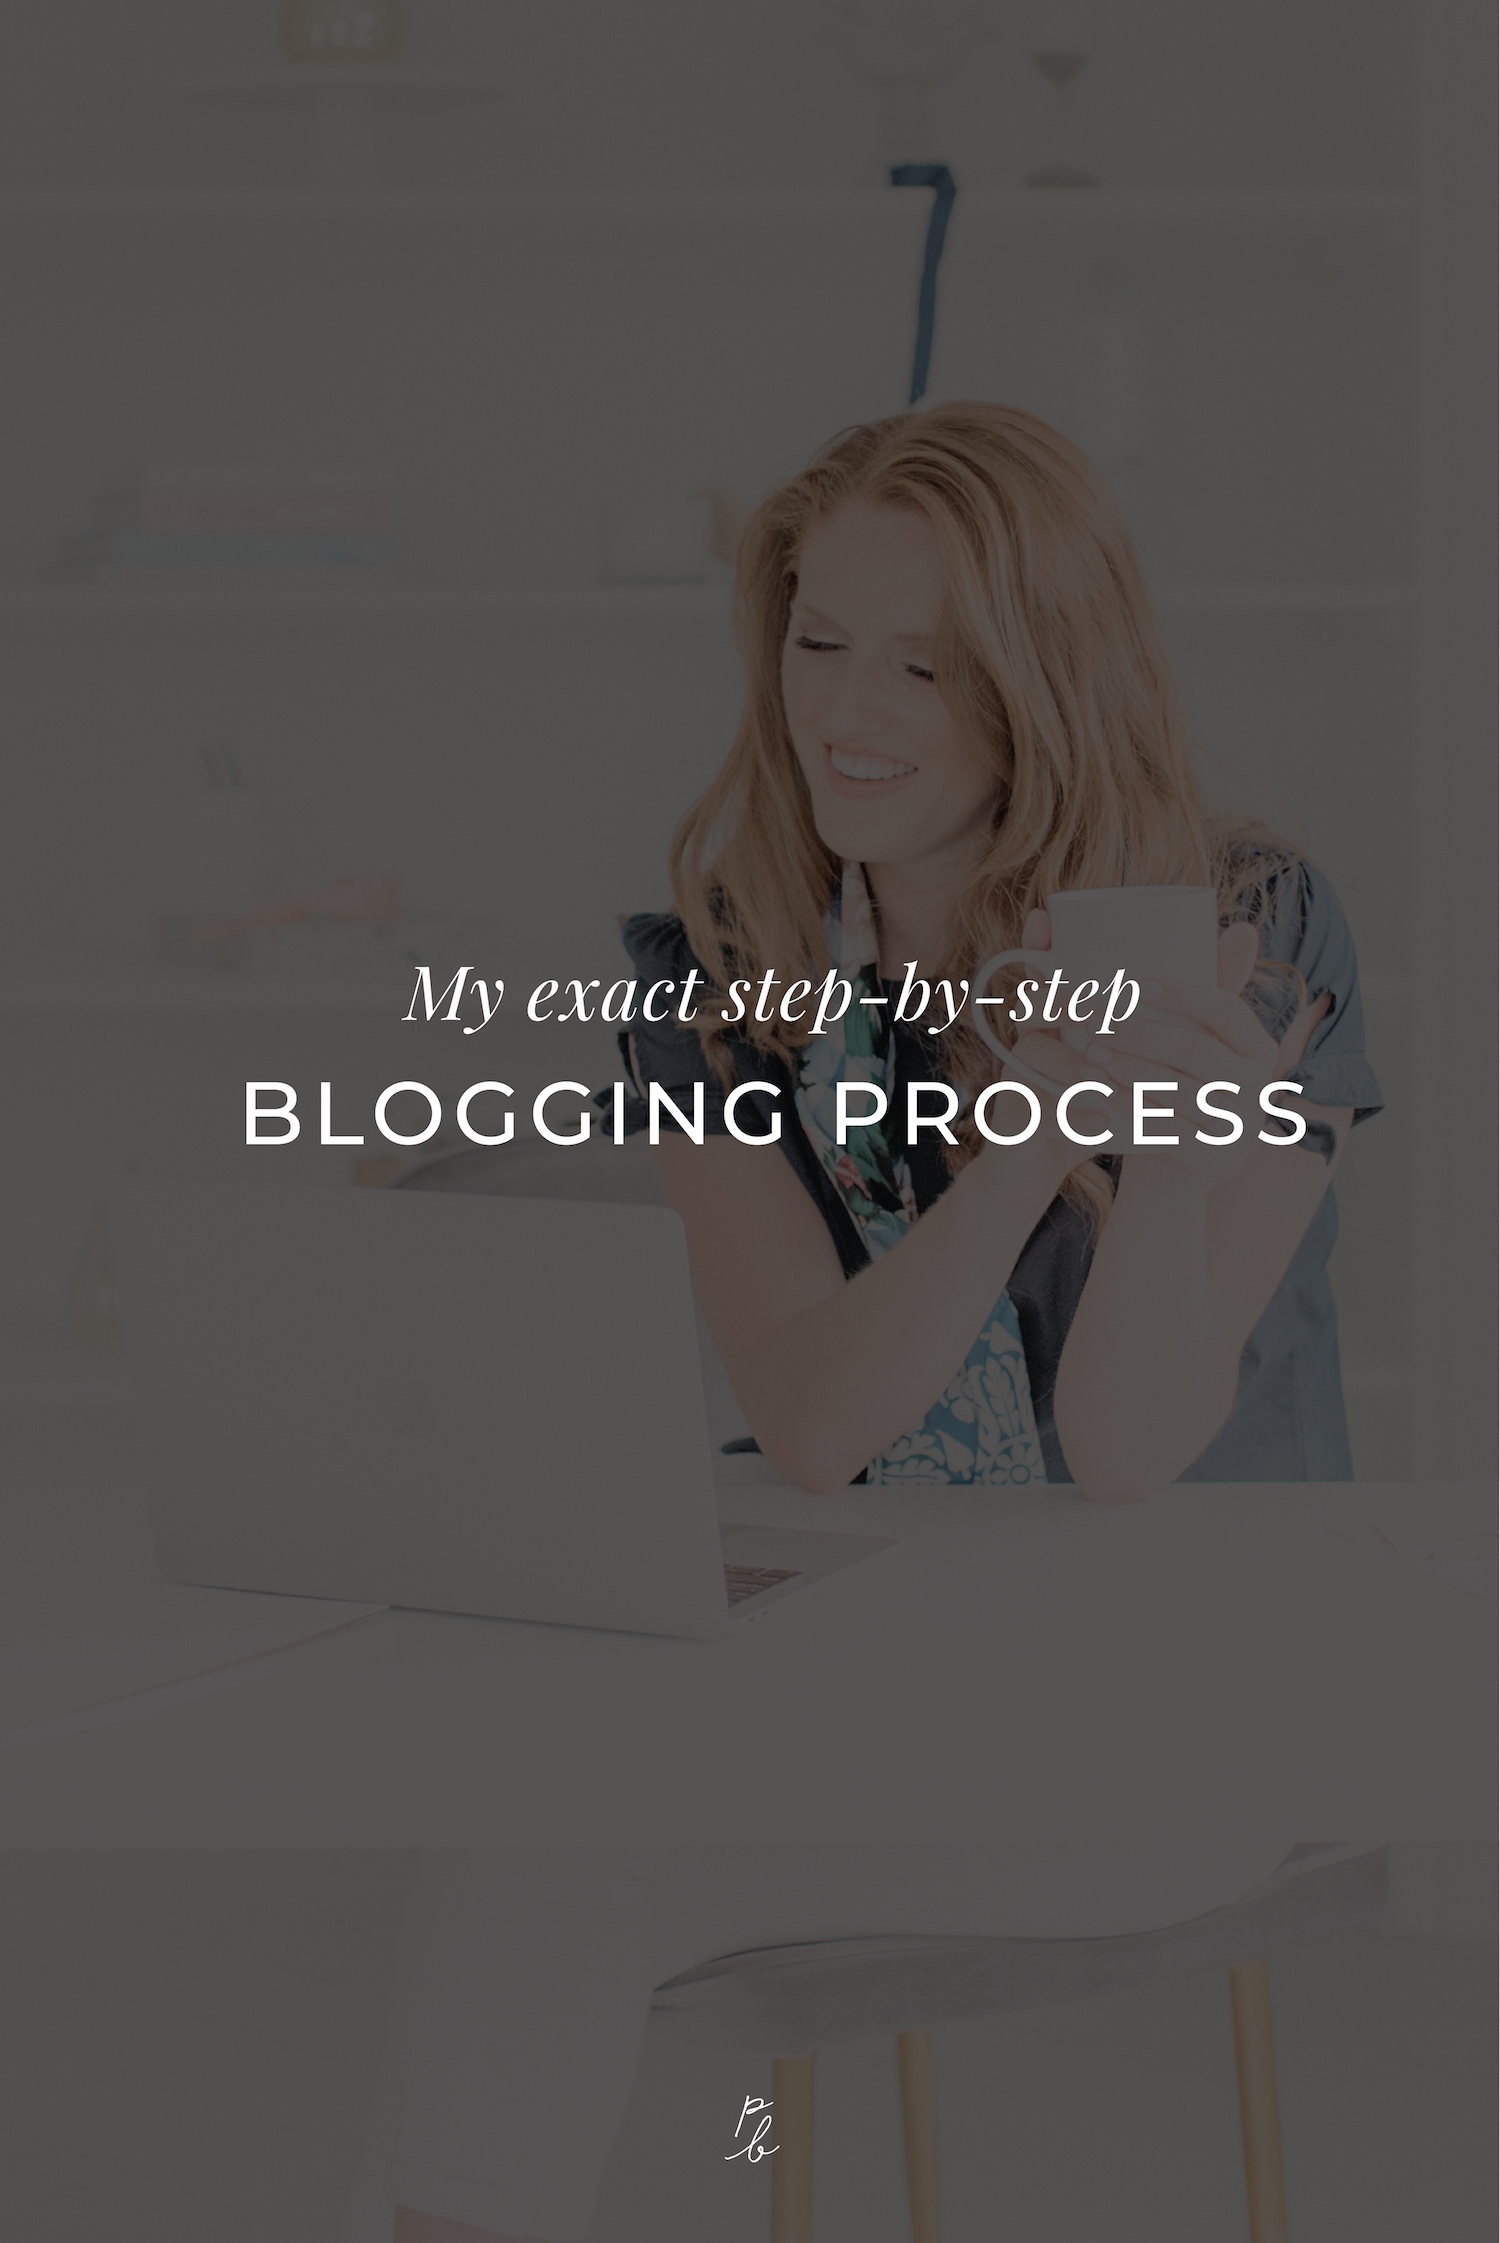 My exact step-by-step blogging process-02.jpeg